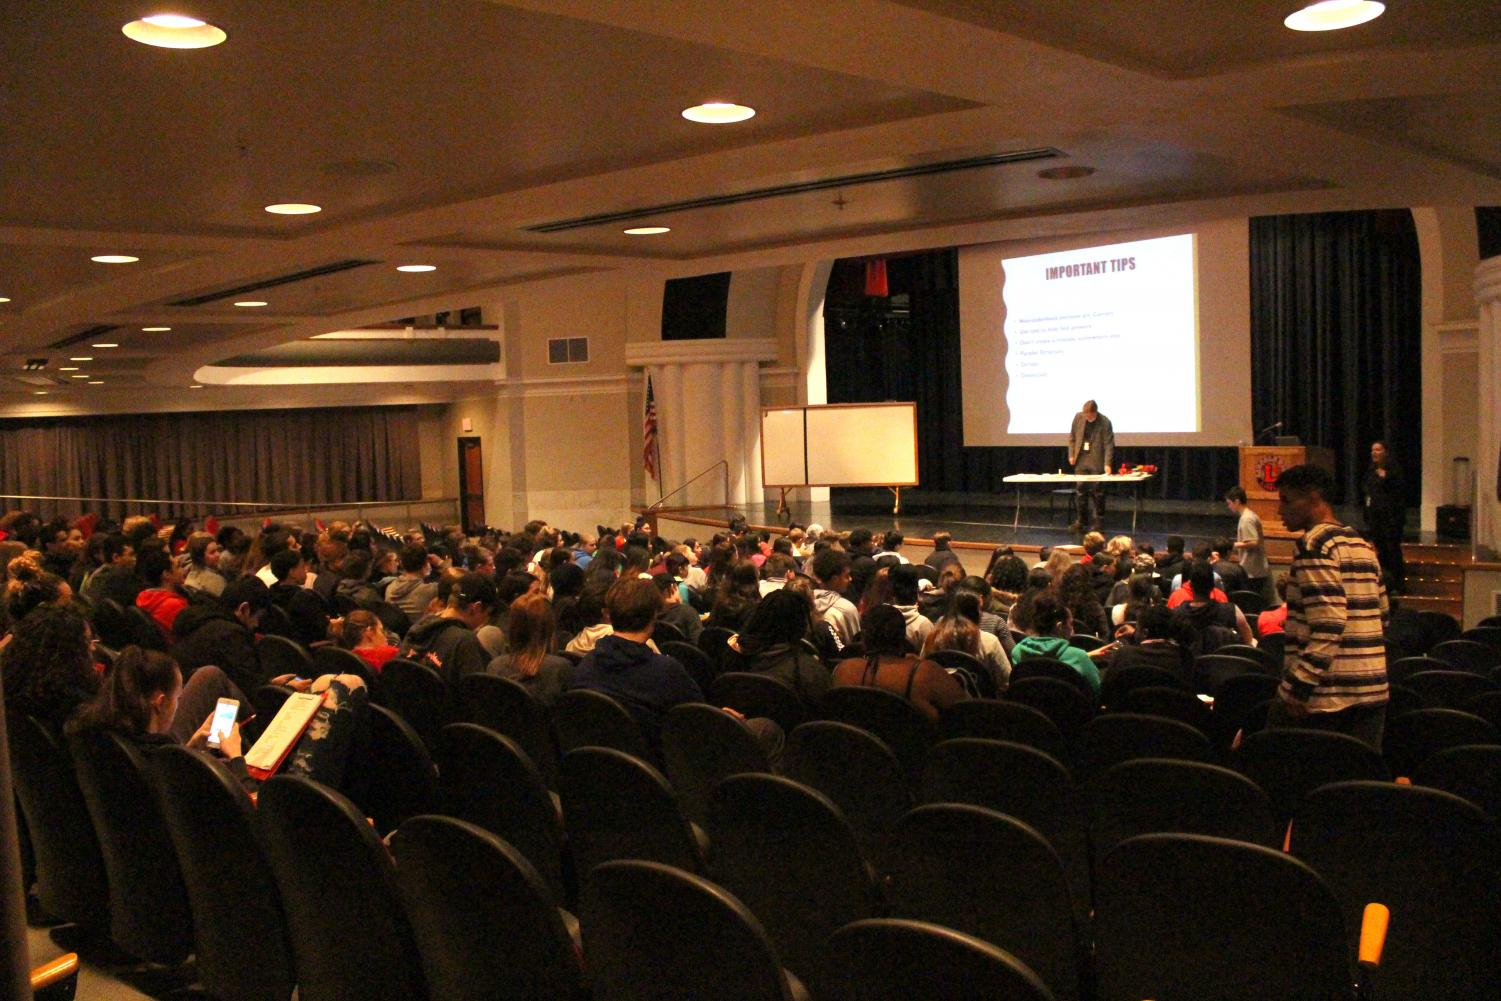 Students attend an ACT prep class, hosted by Educational Talent Search, a program funded by the University of Nebraska Lincoln in the Ted Sorensen Theatre, on March 19th, 2019. Juniors will take the ACT on April 2nd, 2019. Photo by Zeke Williams